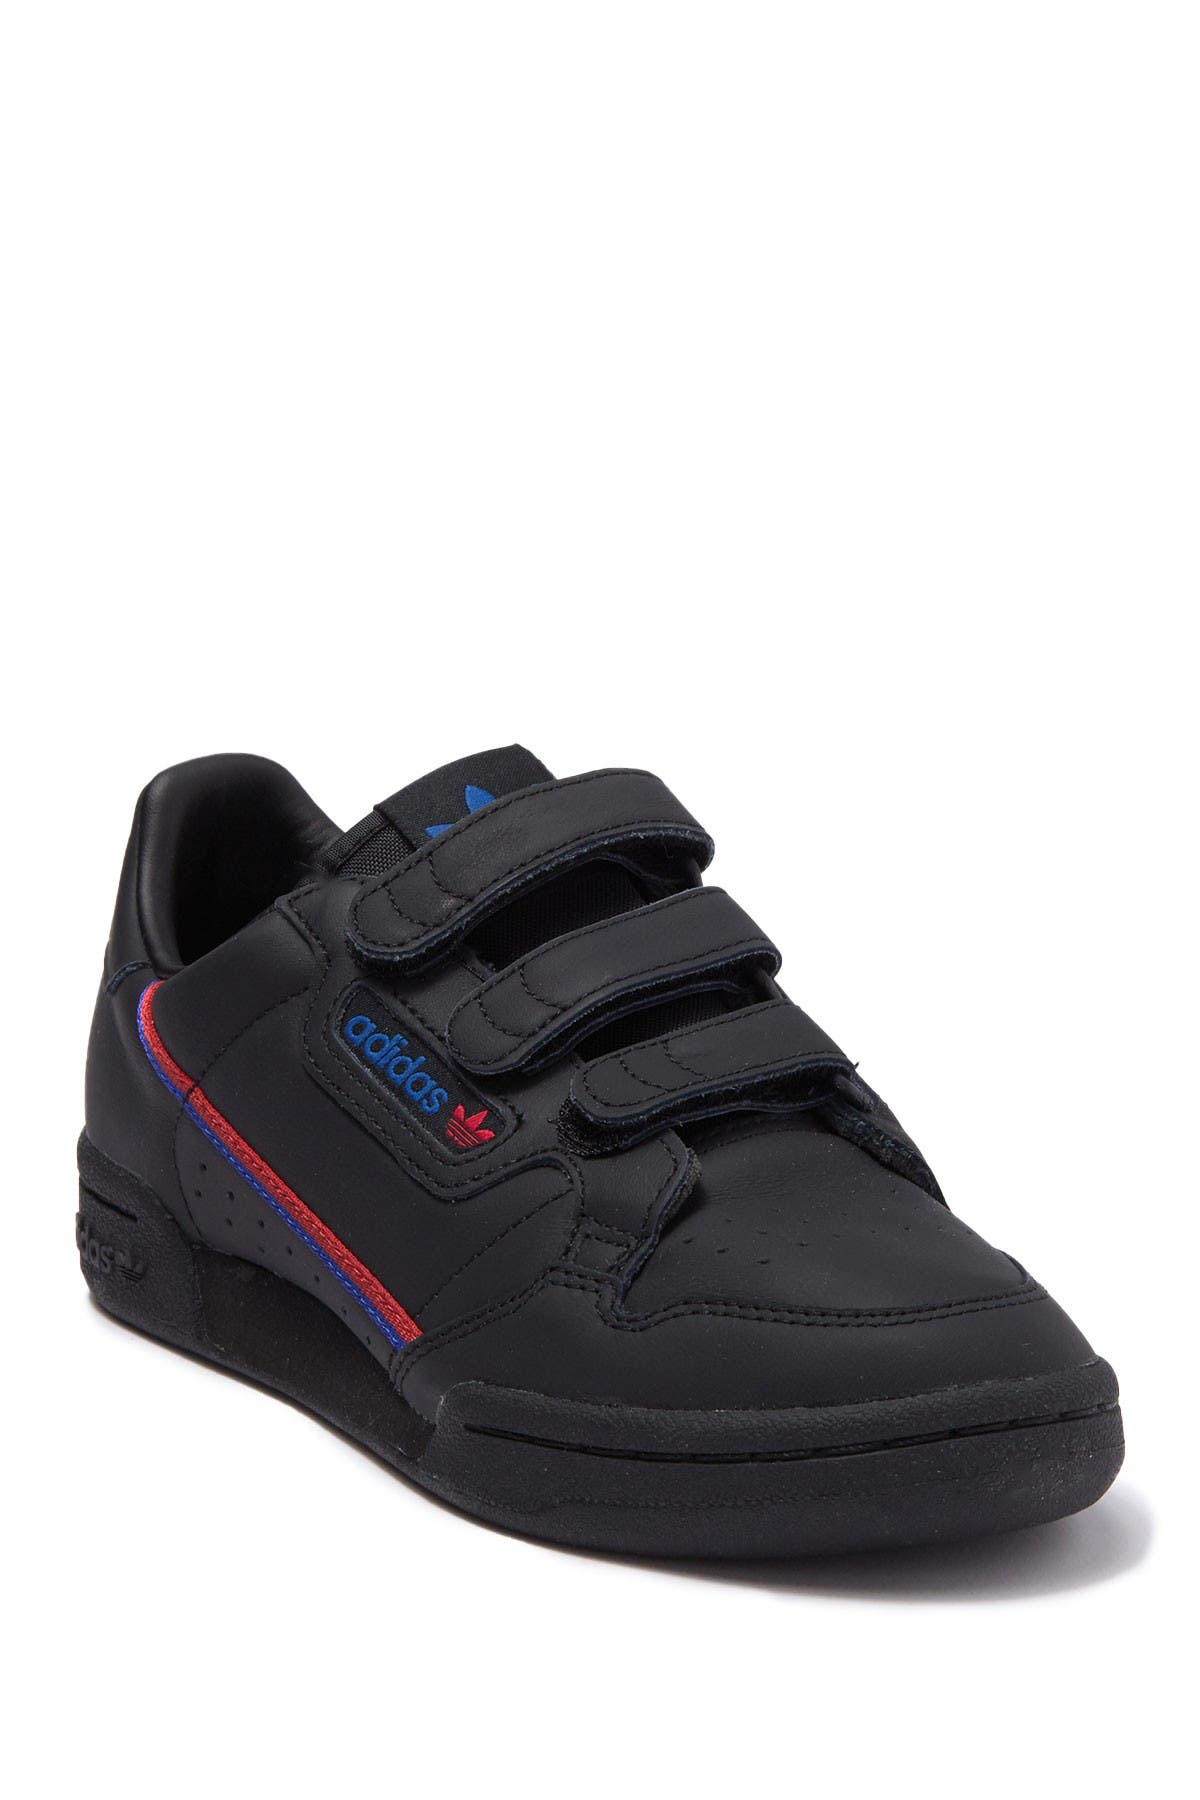 Image of adidas Continental 80 Strap Sneaker